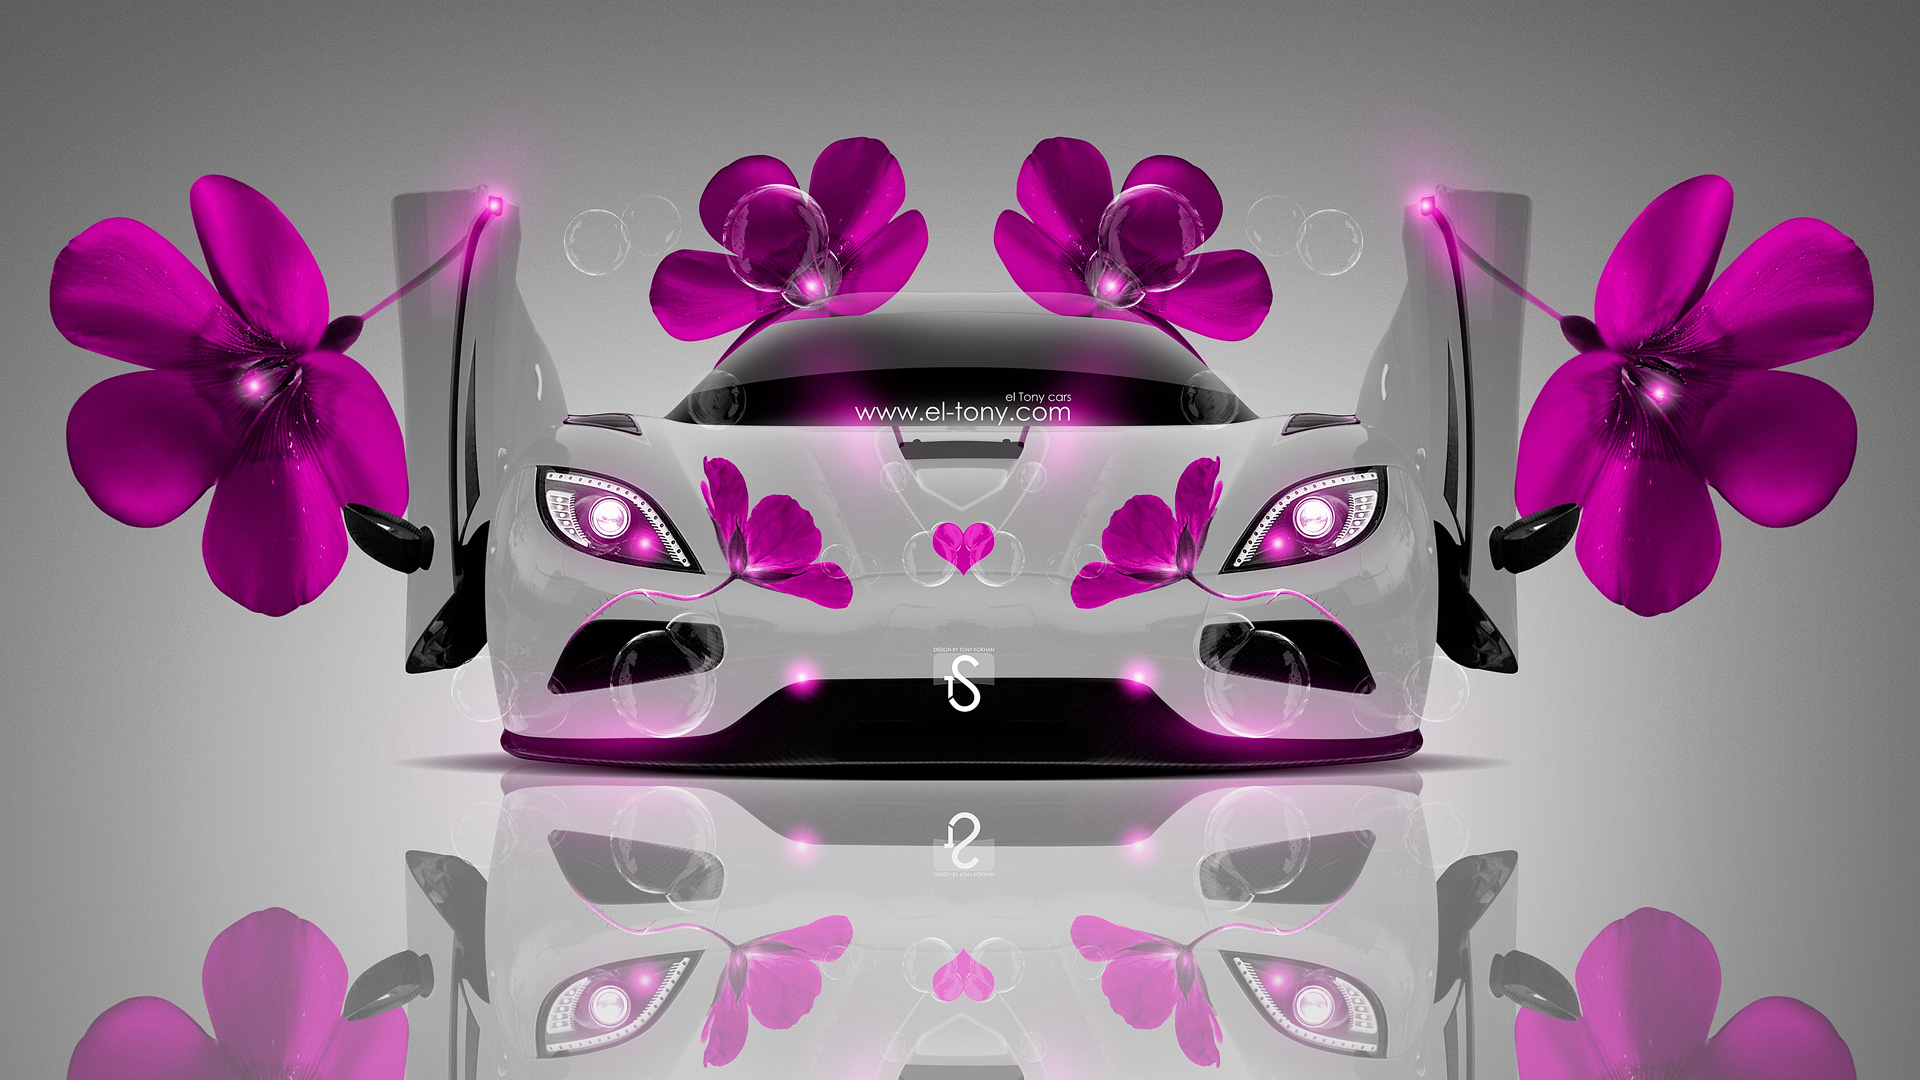 ... Koenigsegg Agera Fantasy Pink Flowers Car 2014 Design  ...